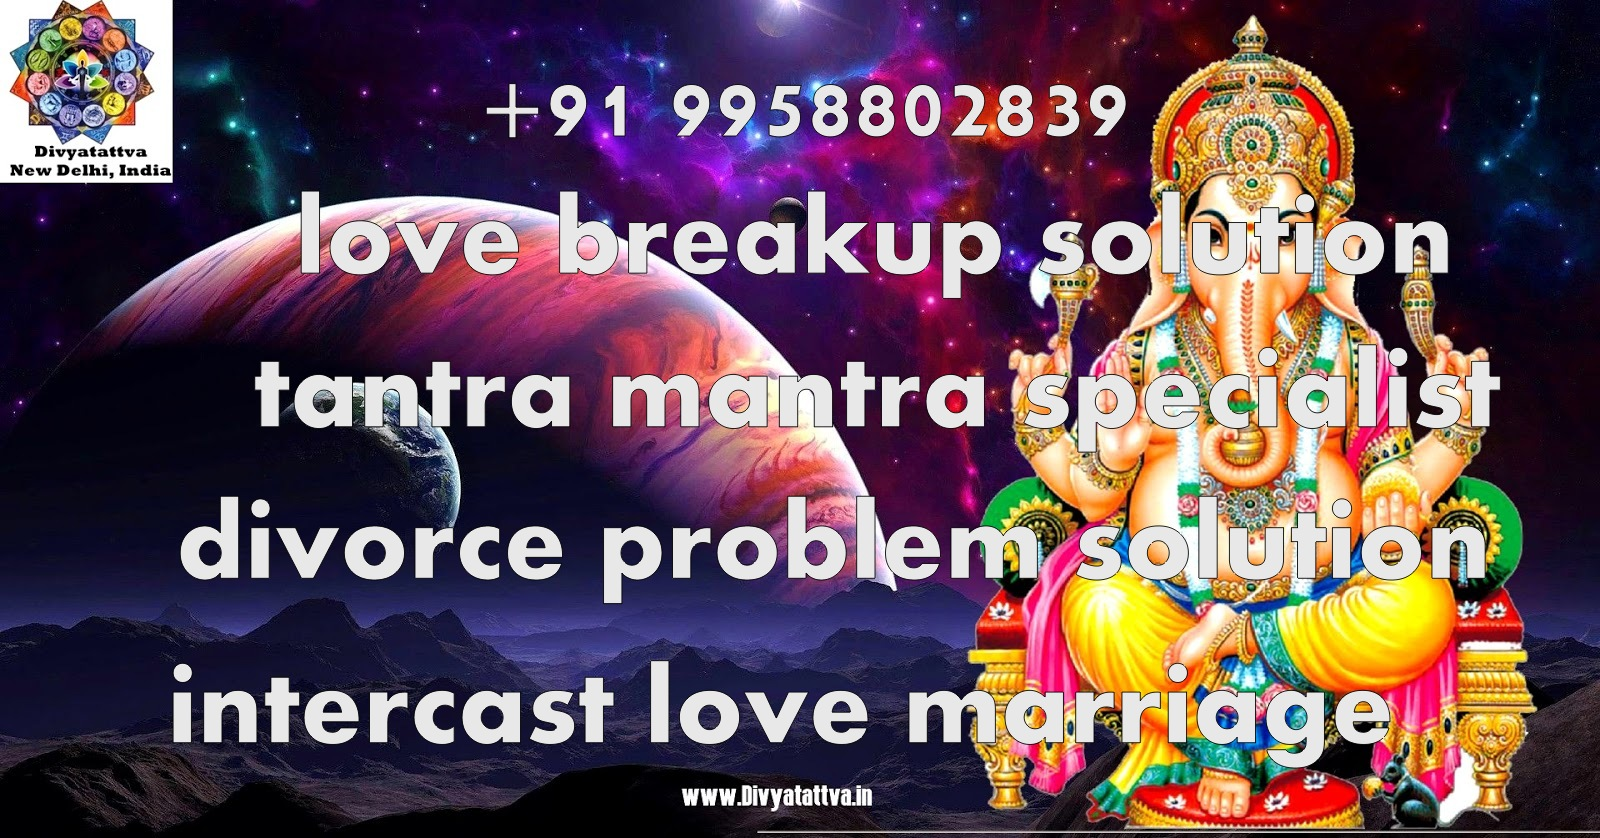 ALL PROBLEM SOLUTION ASTROLOGER images America91 9958802839 1600x838